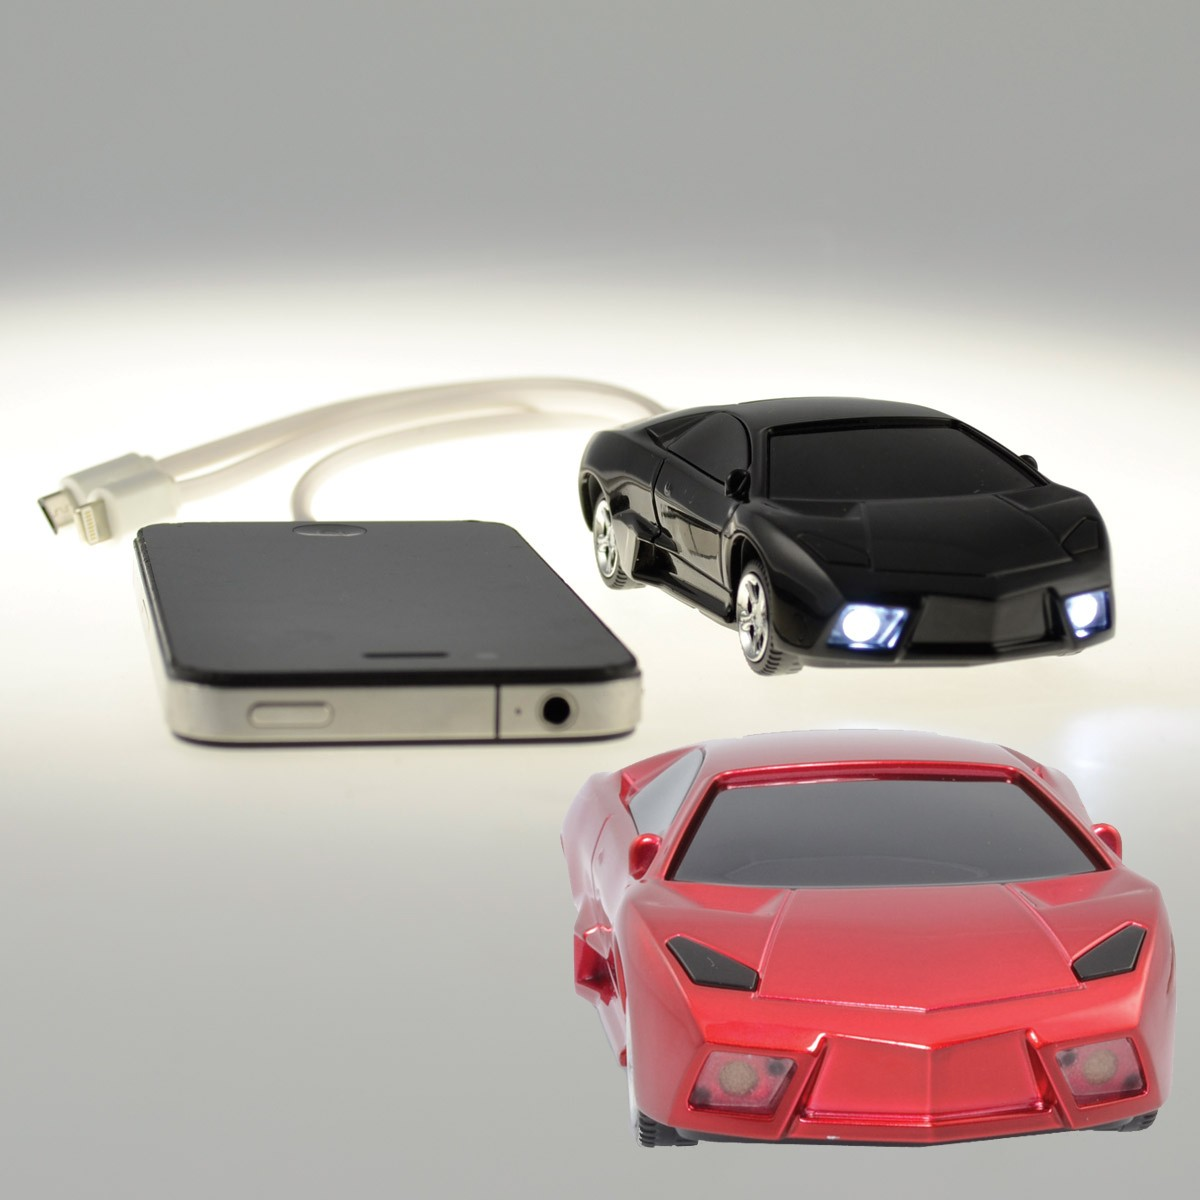 batterie de secours usb en forme de voiture de course sur. Black Bedroom Furniture Sets. Home Design Ideas